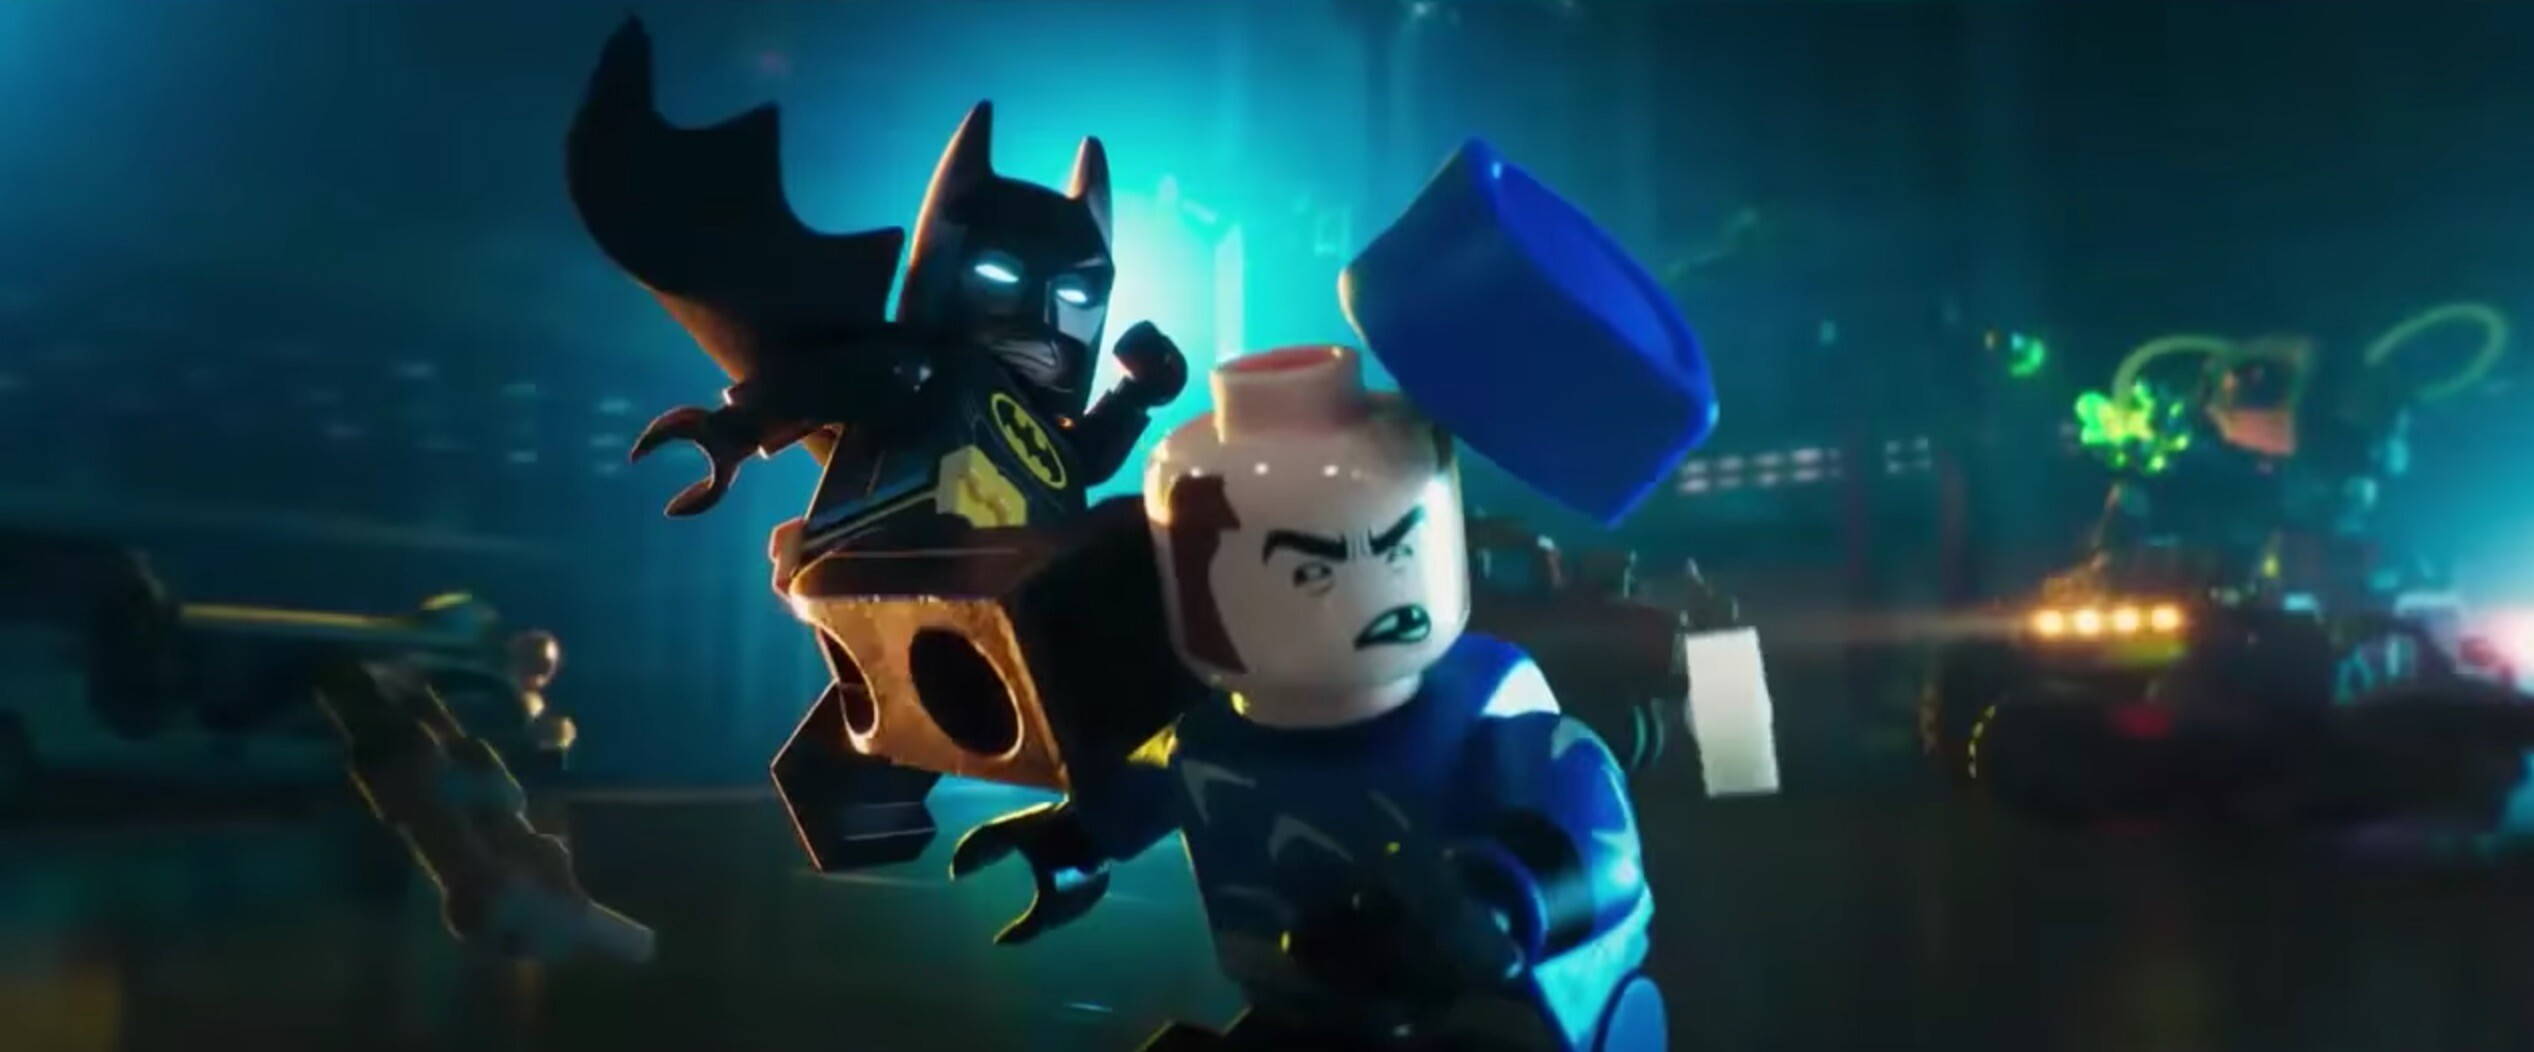 What The Lego Batman Movie Can Teach Us About American Politics